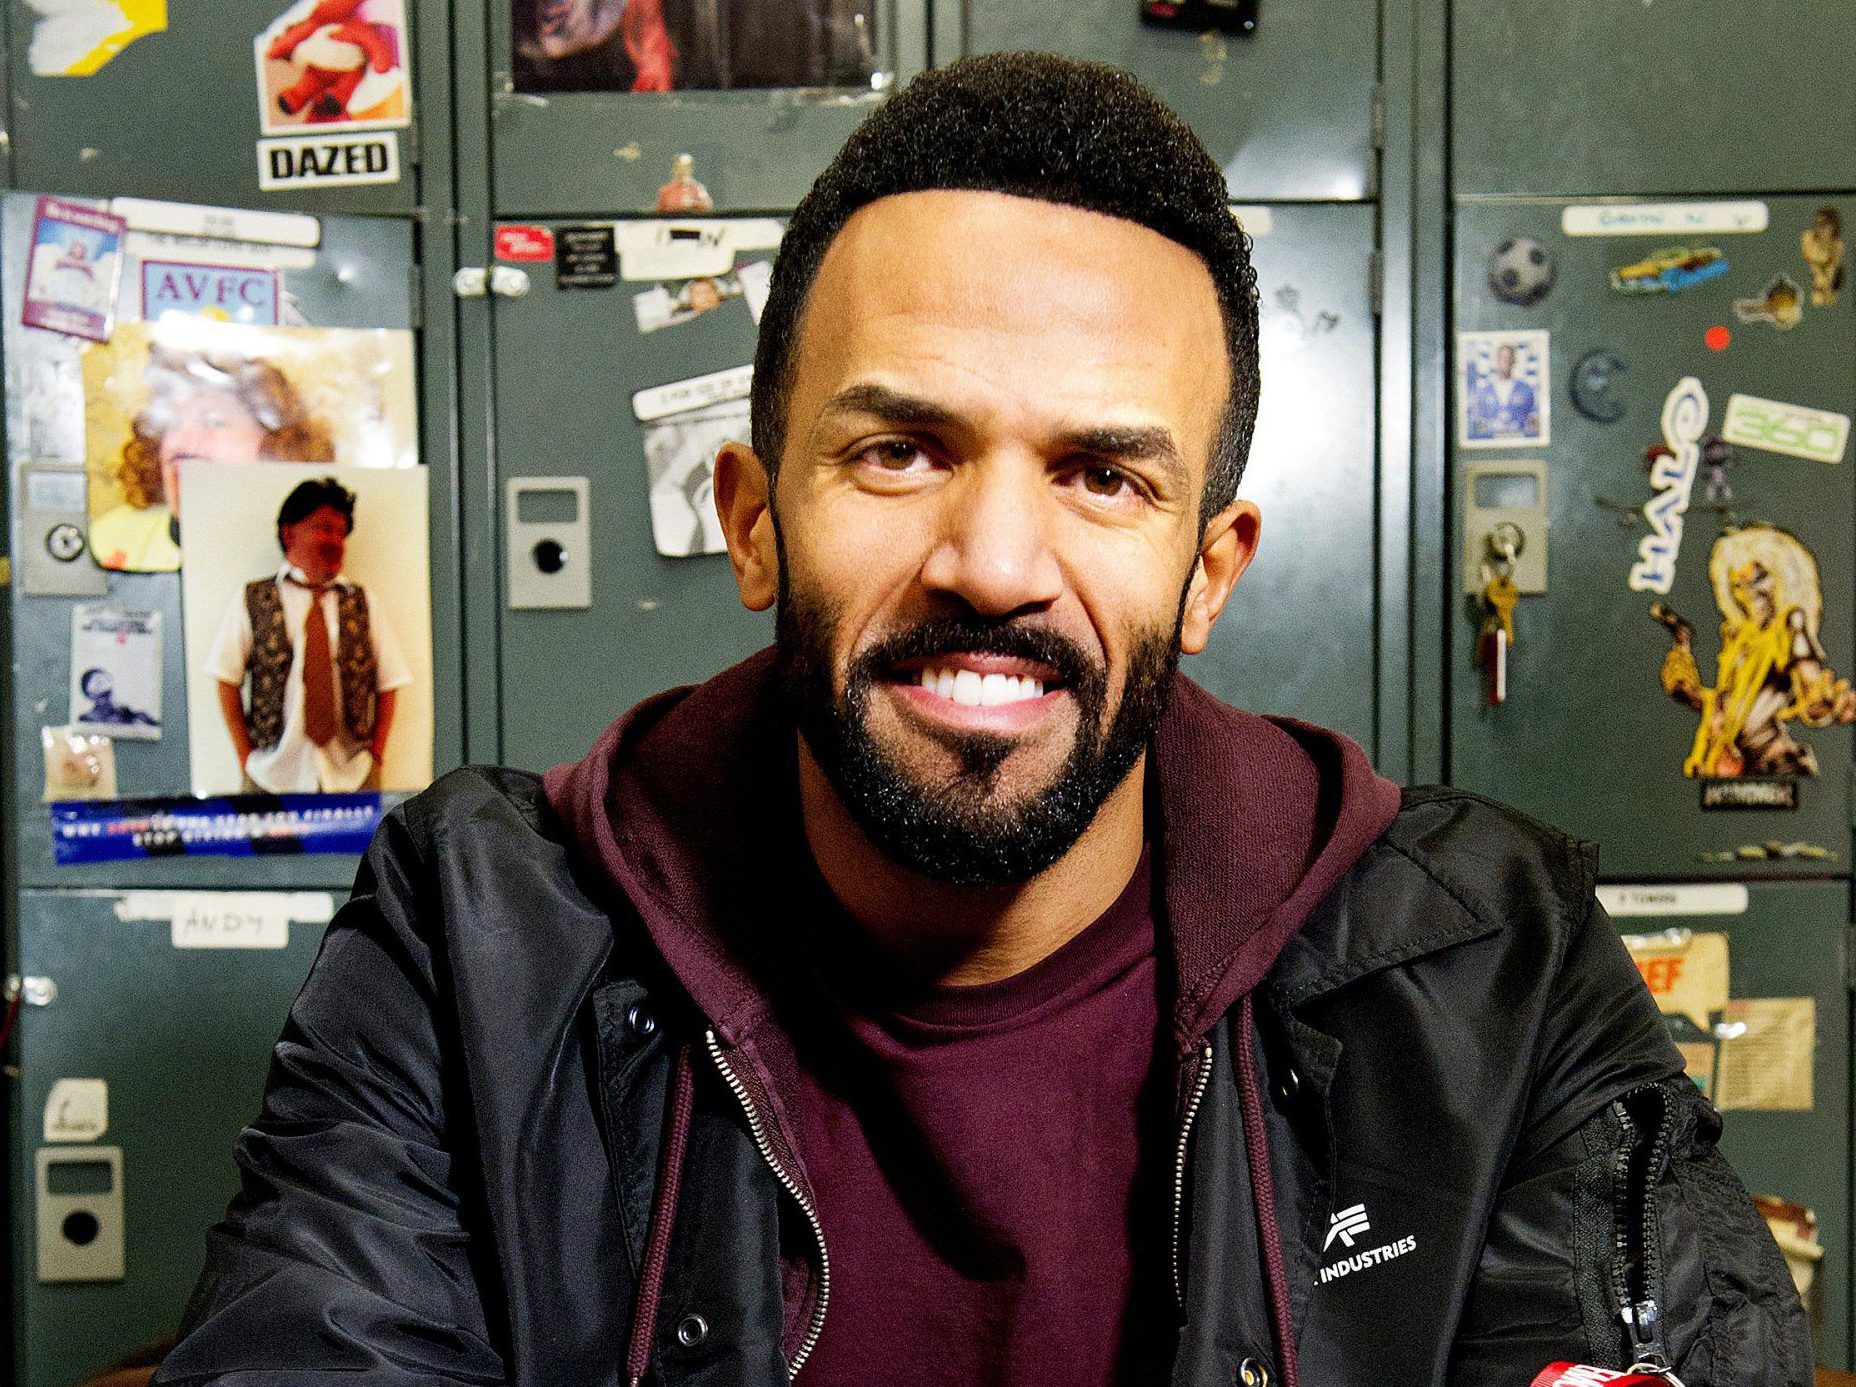 Craig David isn't looking for love, love will find Craig David